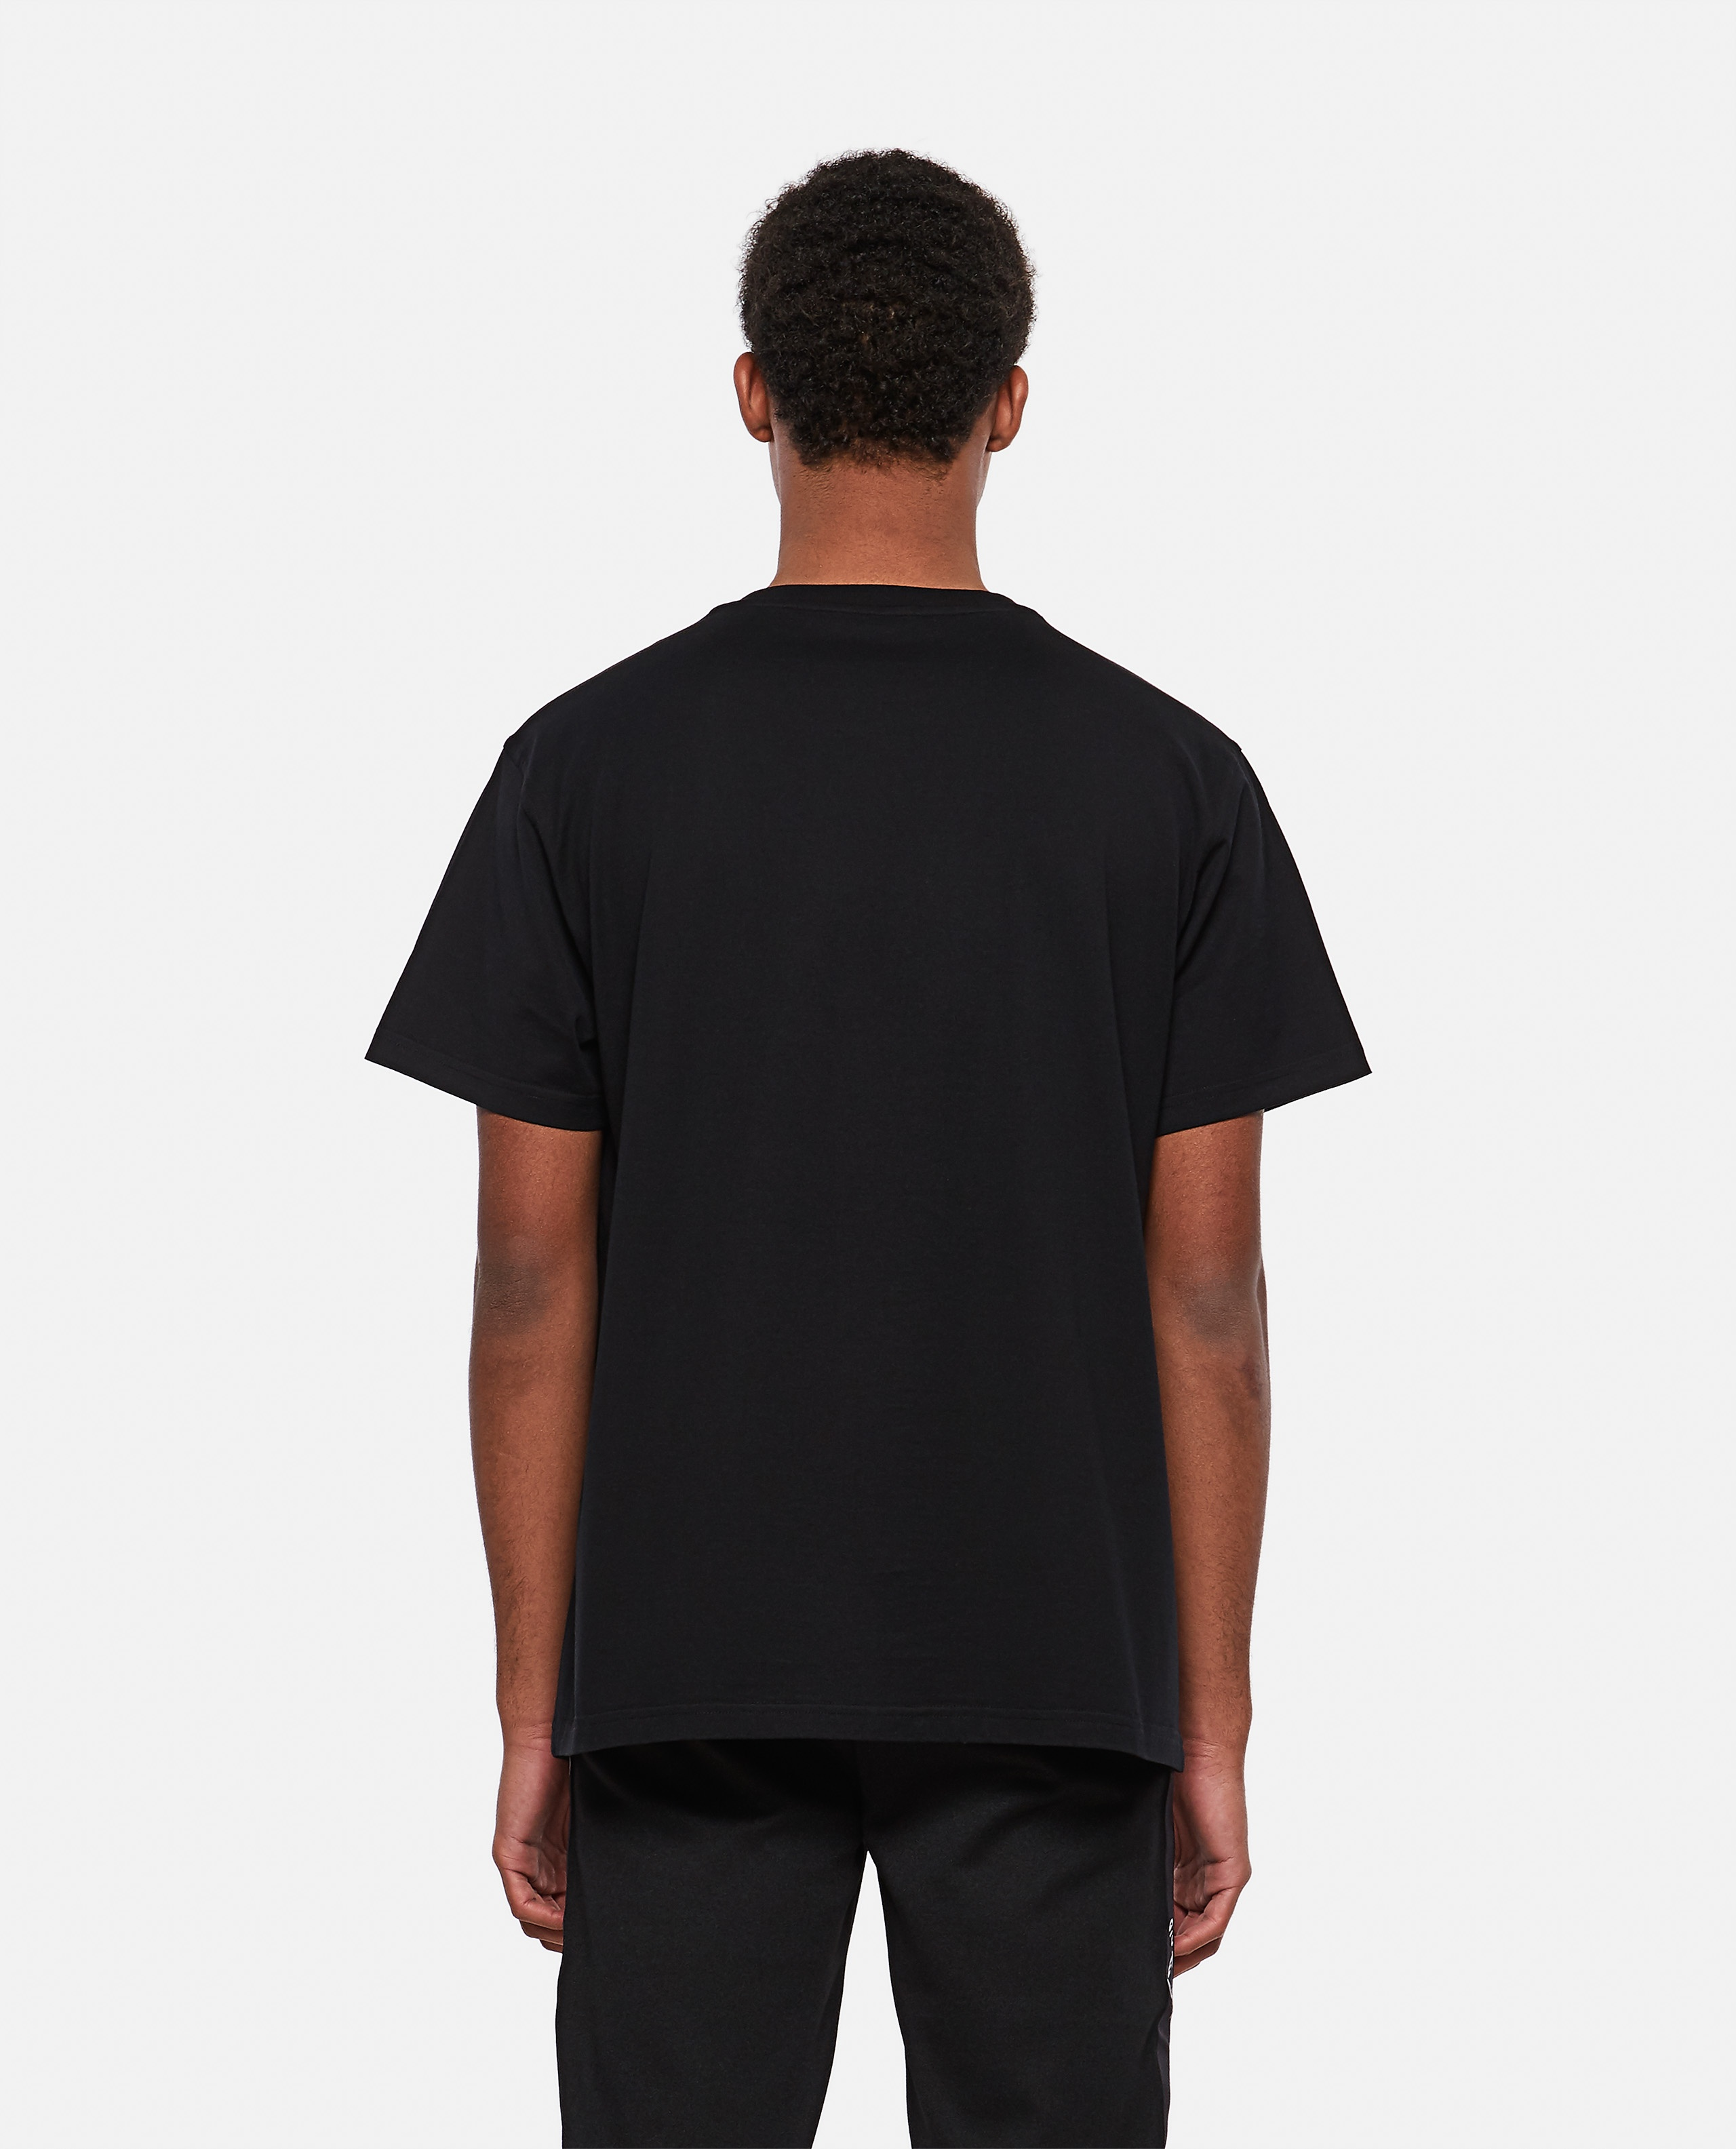 Cotton T-shirt with print Men Givenchy 000301940044341 3